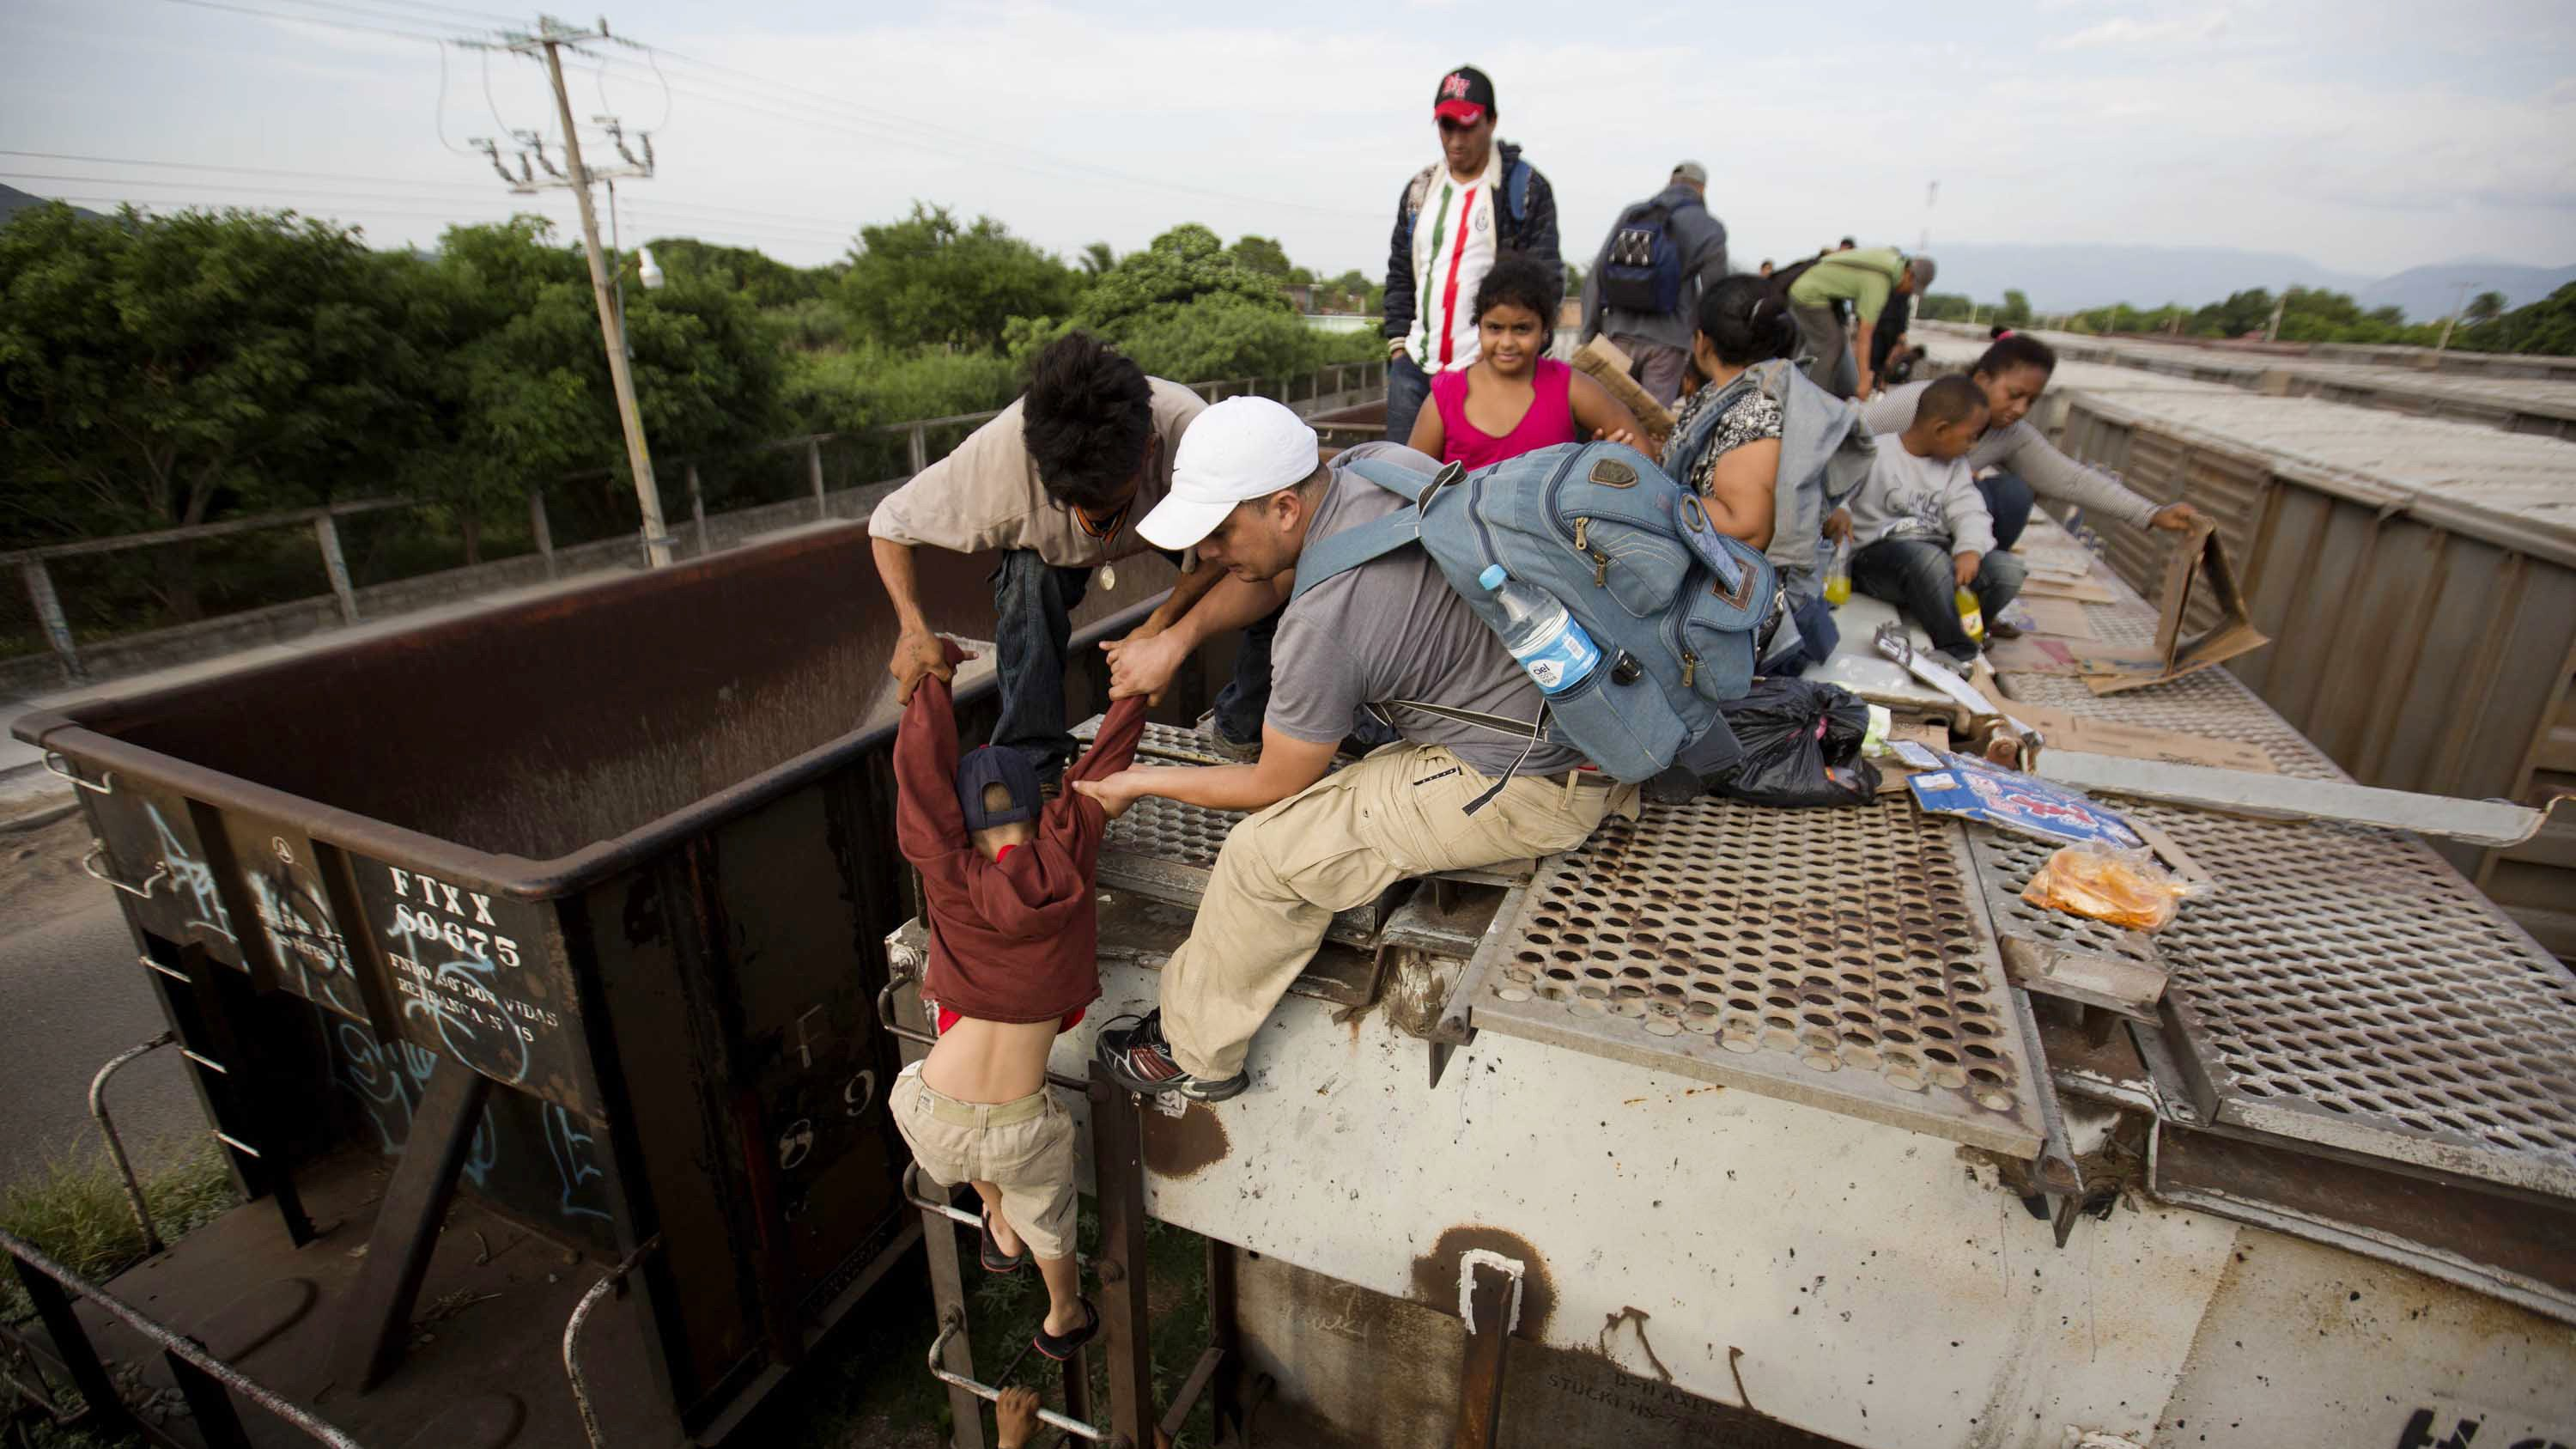 The number of Central American immigrant children to the US is growing